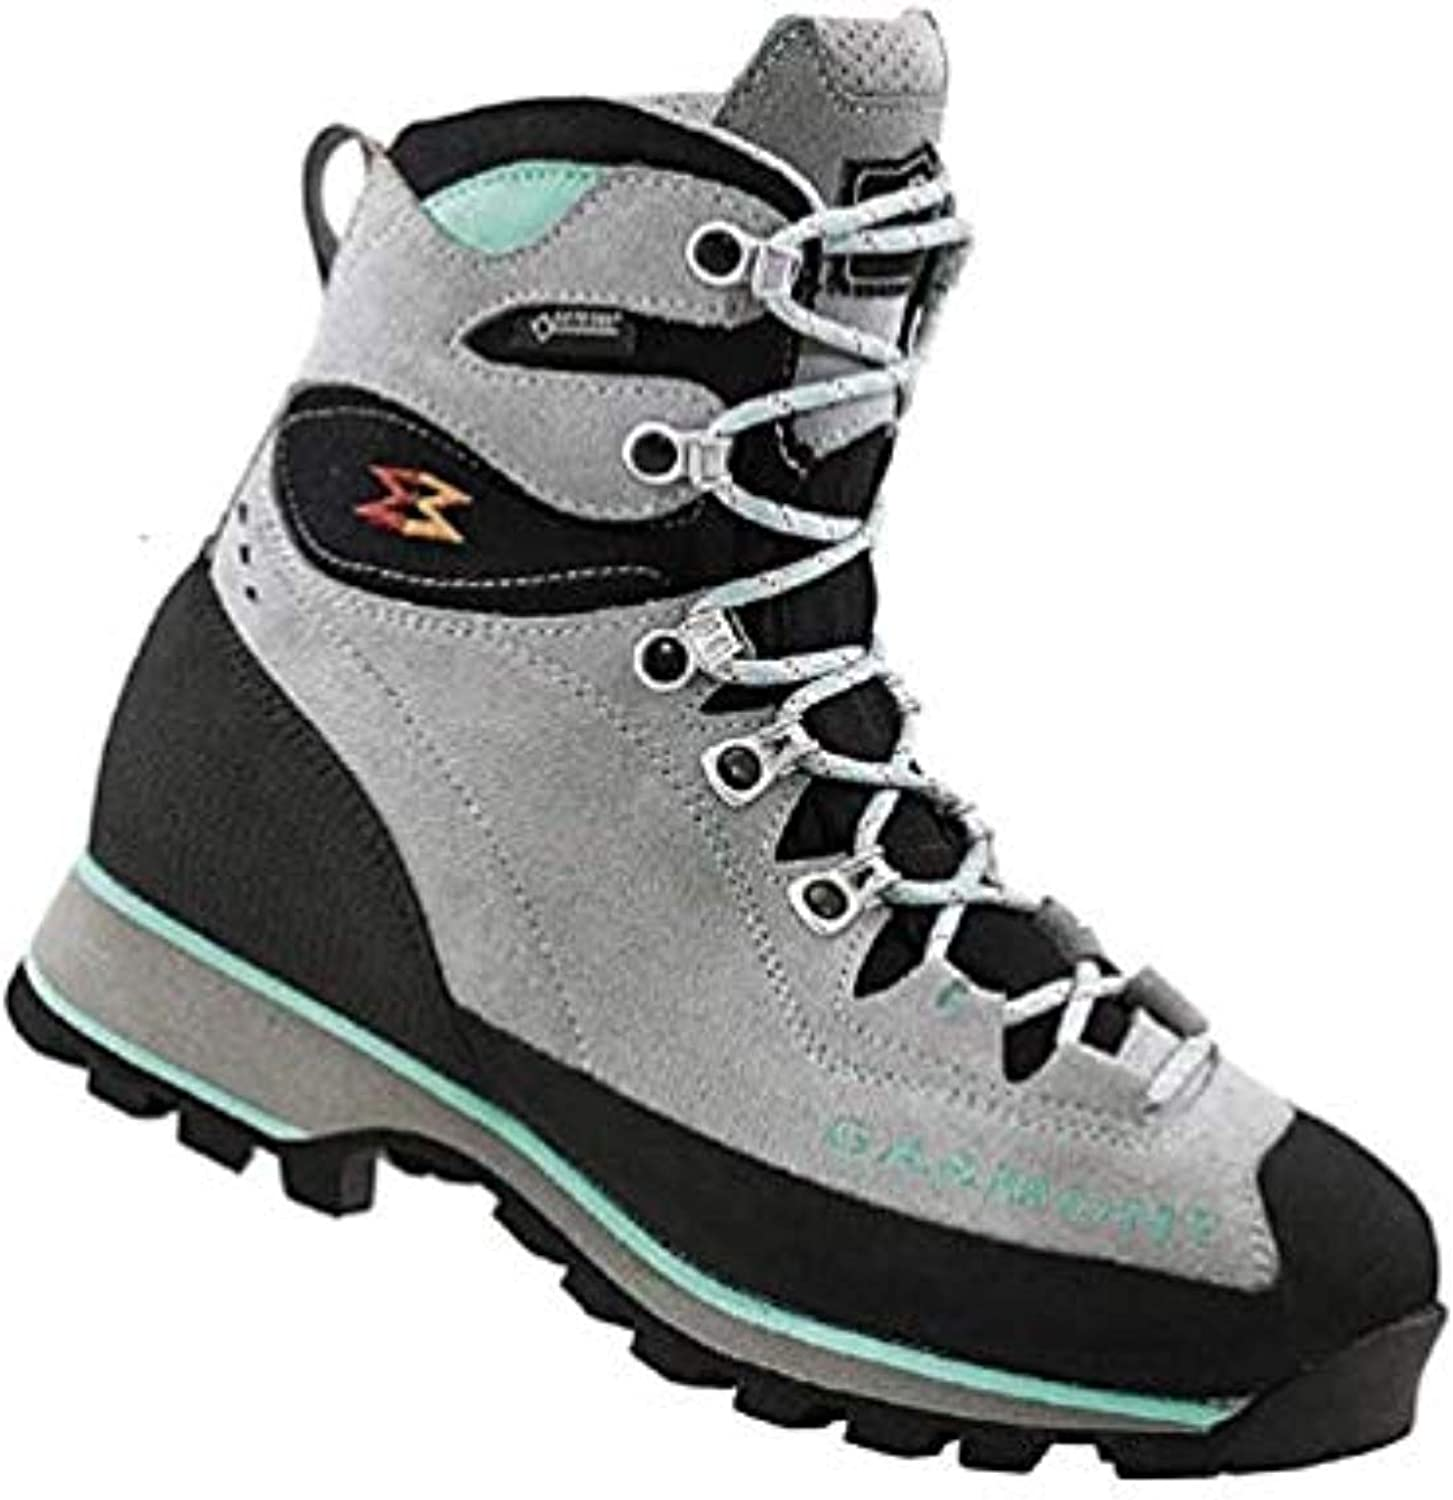 Garmont Women's Tower Trek GTX Hiking Boots